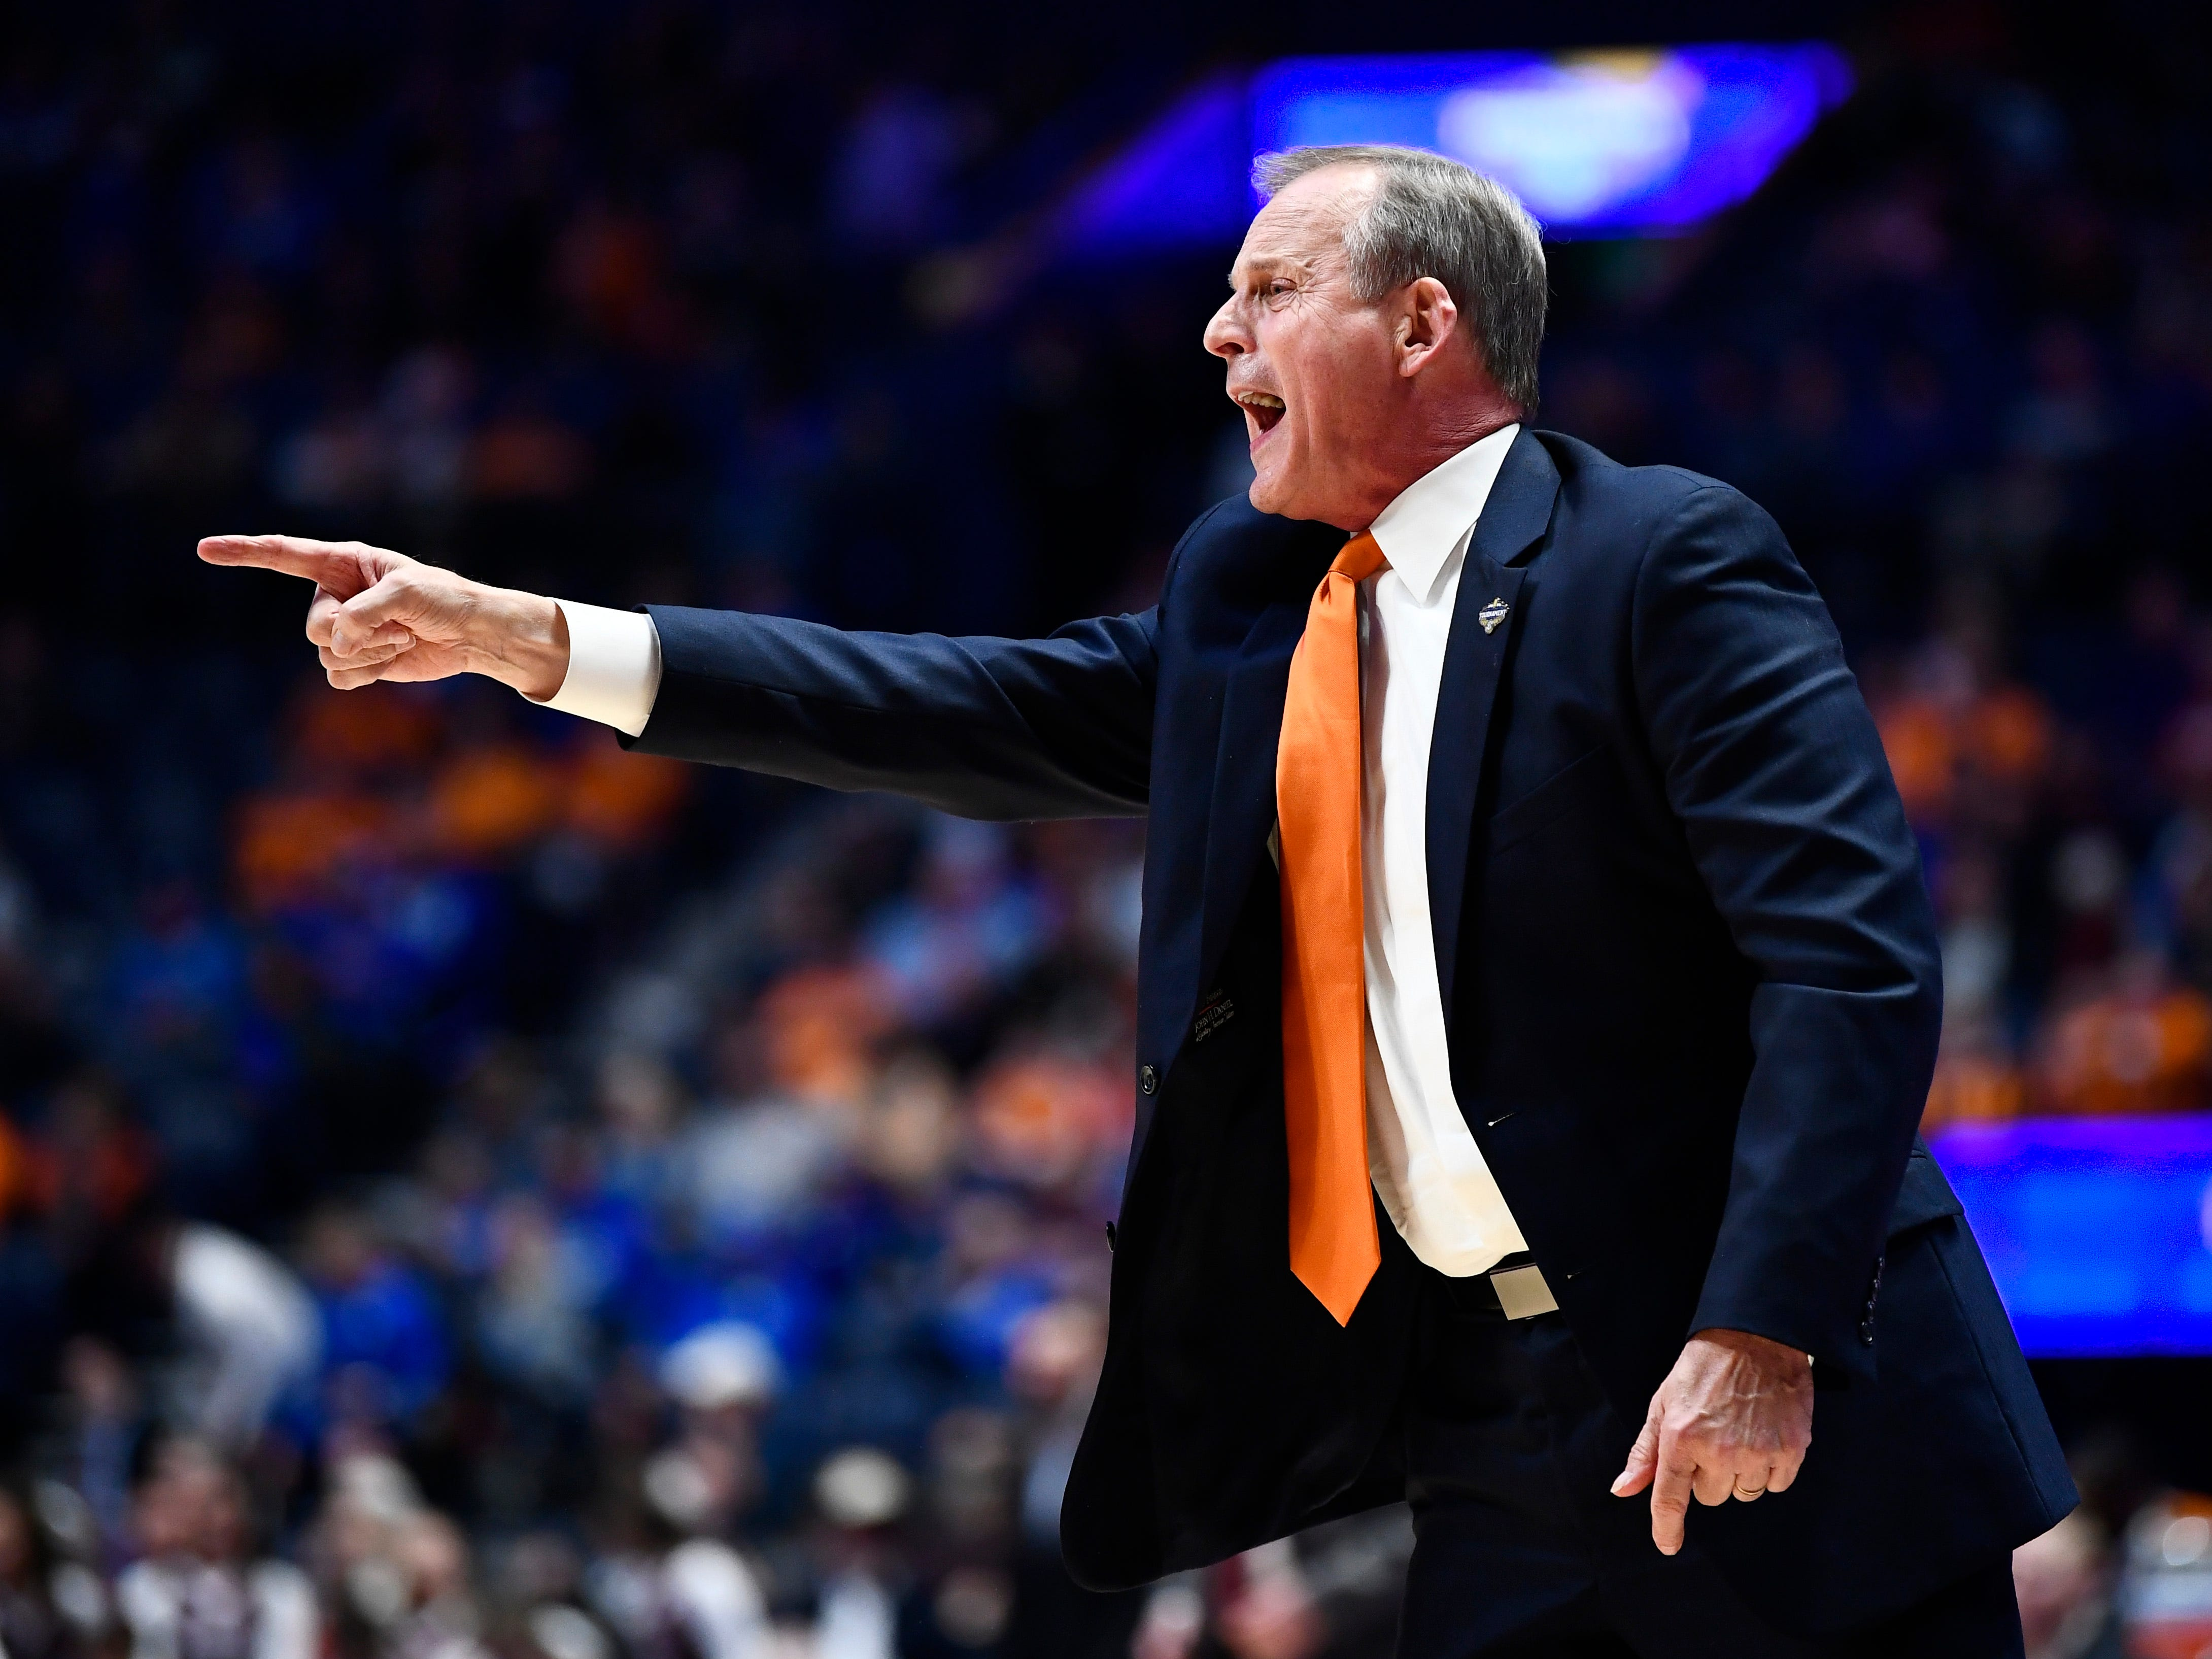 Tennessee head coach Rick Barnes yells to his team during the first half of the SEC Men's Basketball Tournament game against Mississippi State at Bridgestone Arena in Nashville, Tenn., Friday, March 15, 2019.